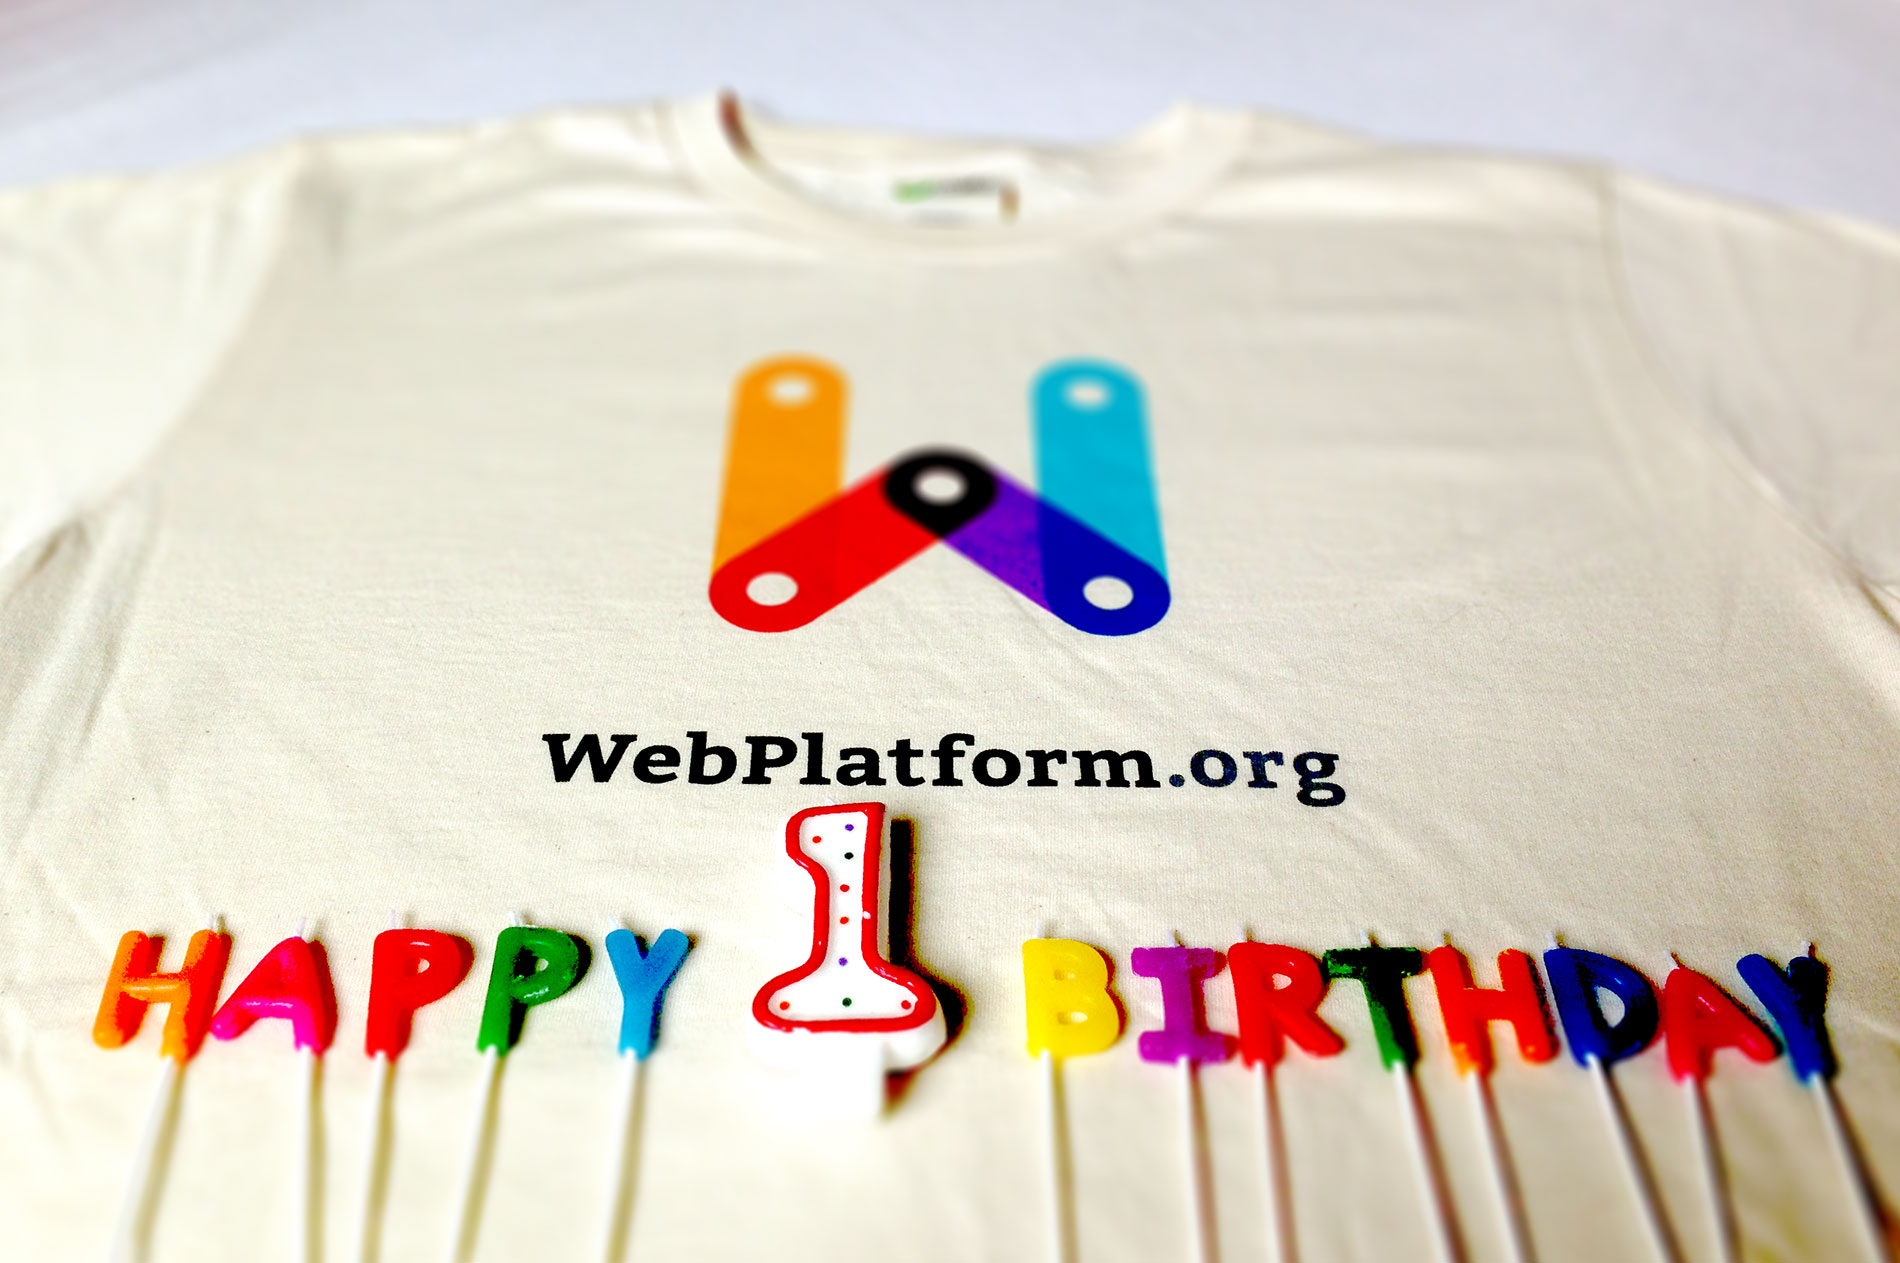 Happy first birthday, WebPlatform.org